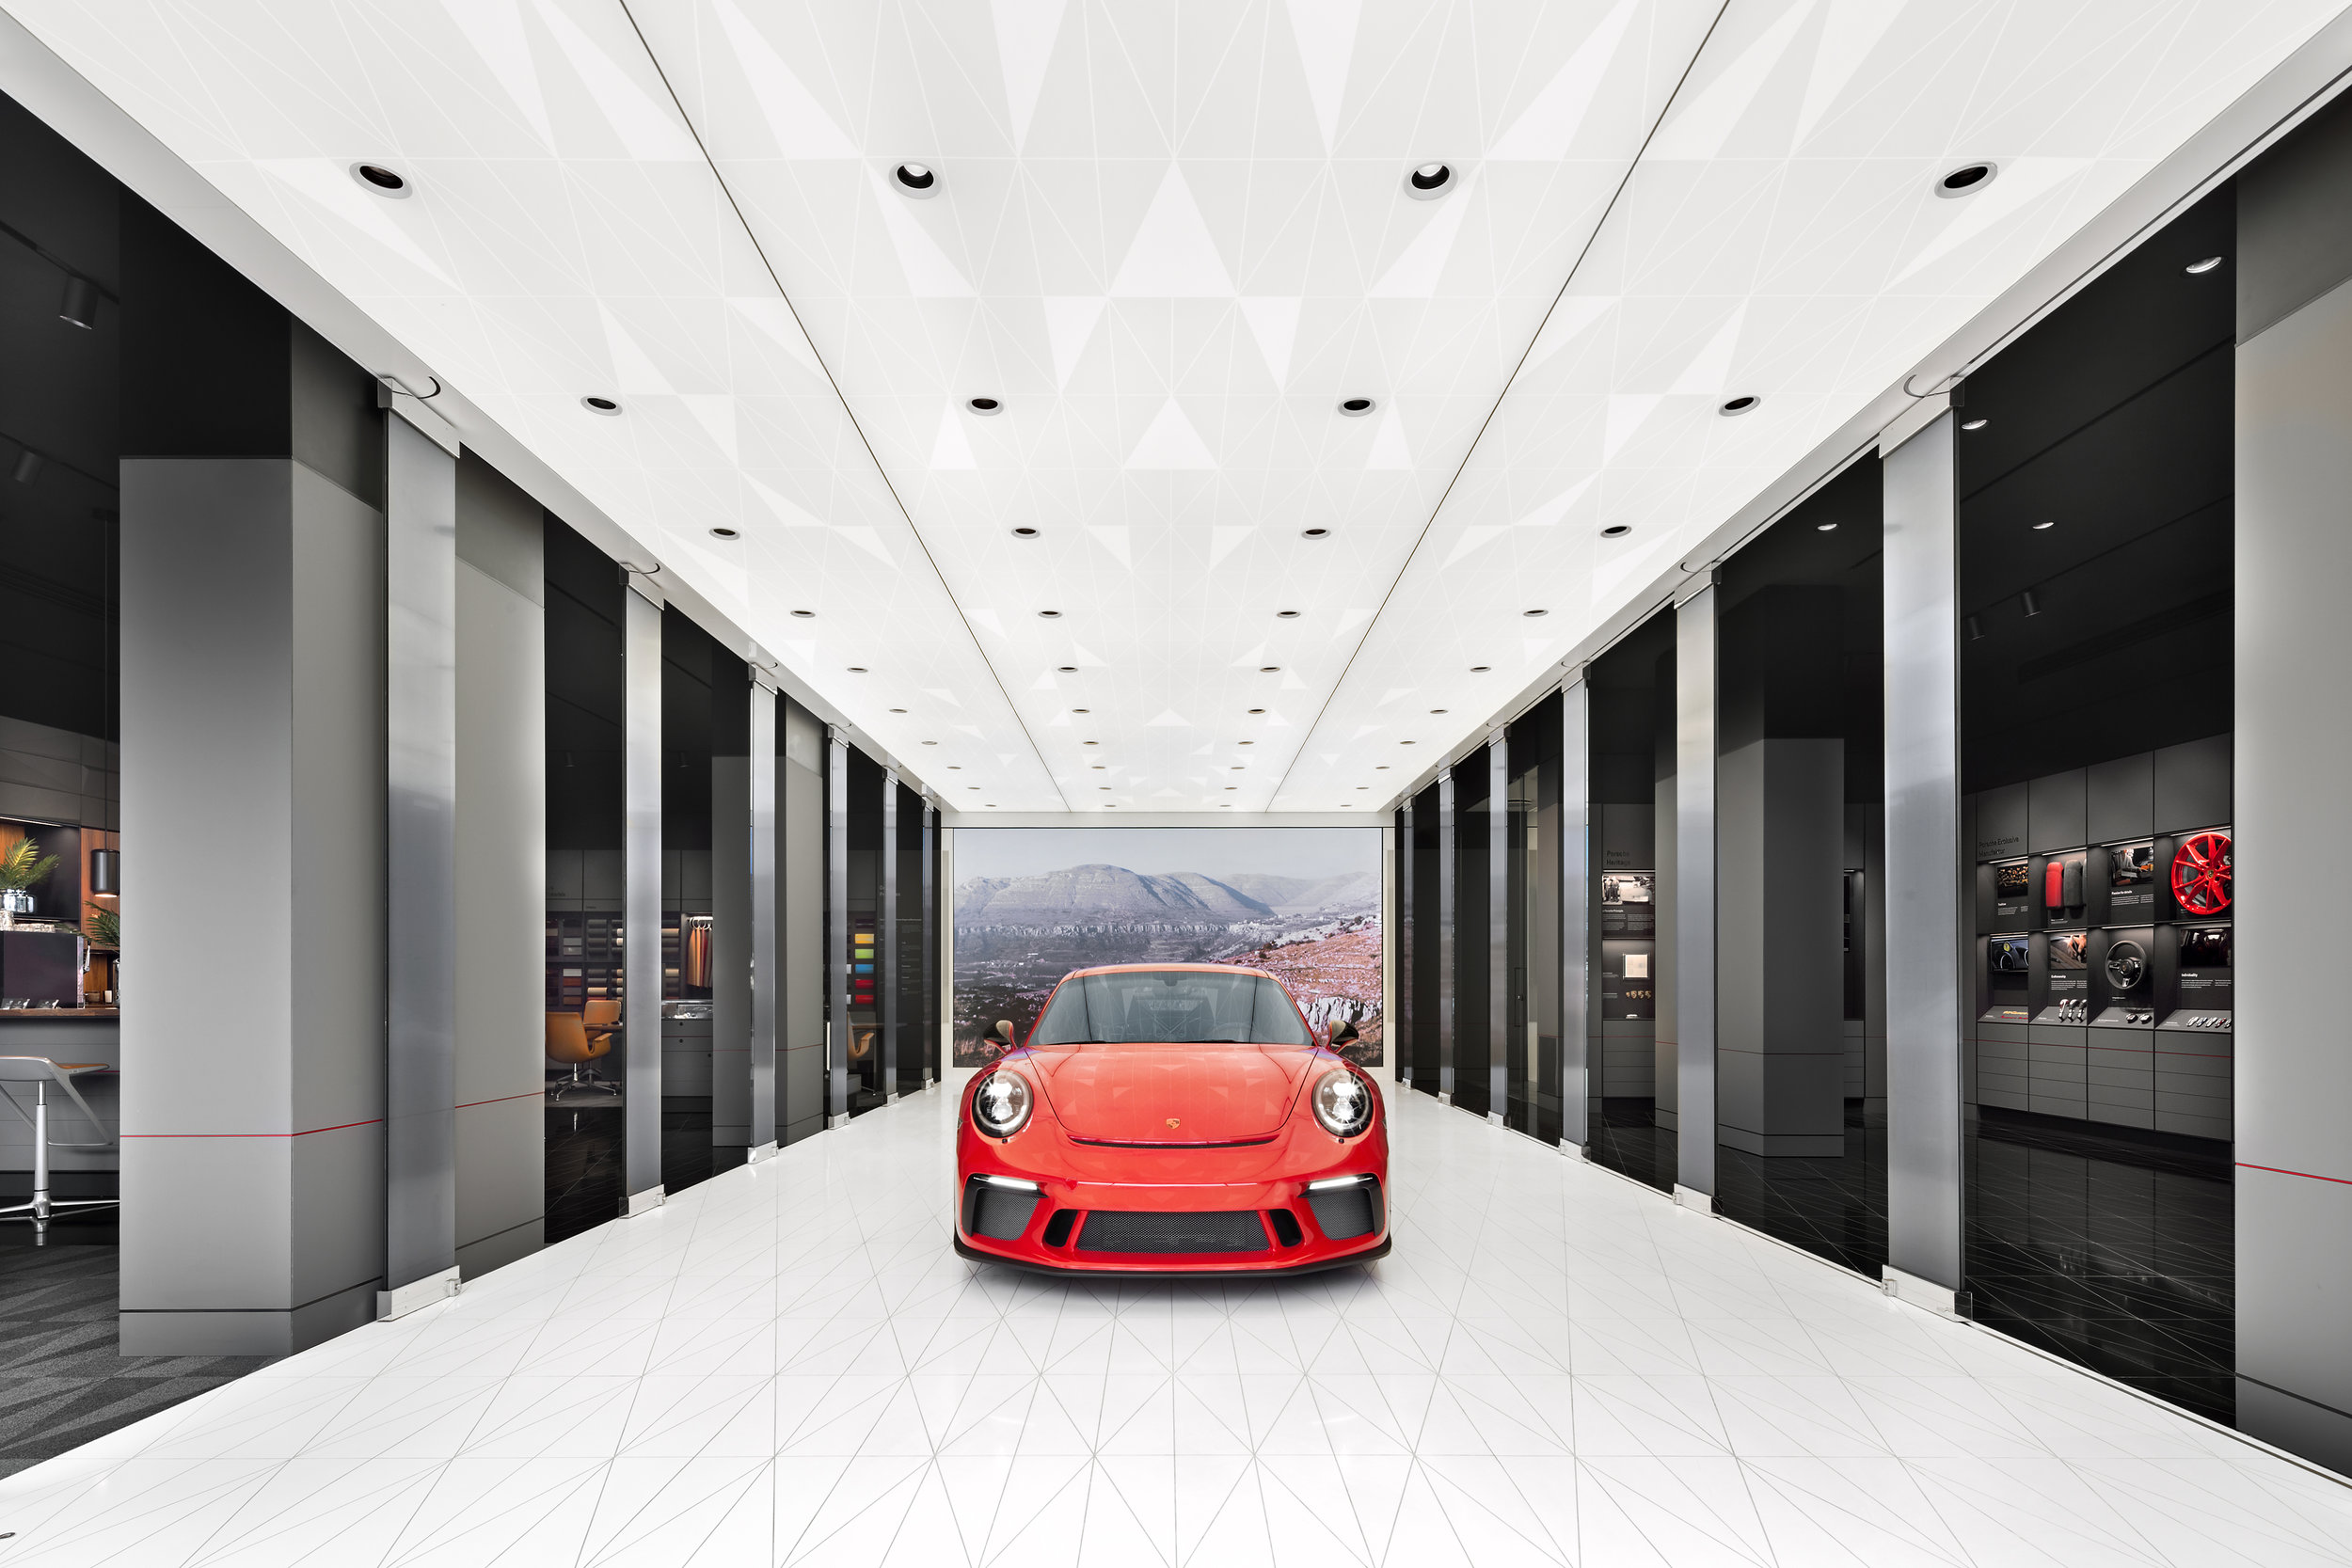 porsche-studio_retail-interior-design_coordination-berlin_04a.jpg